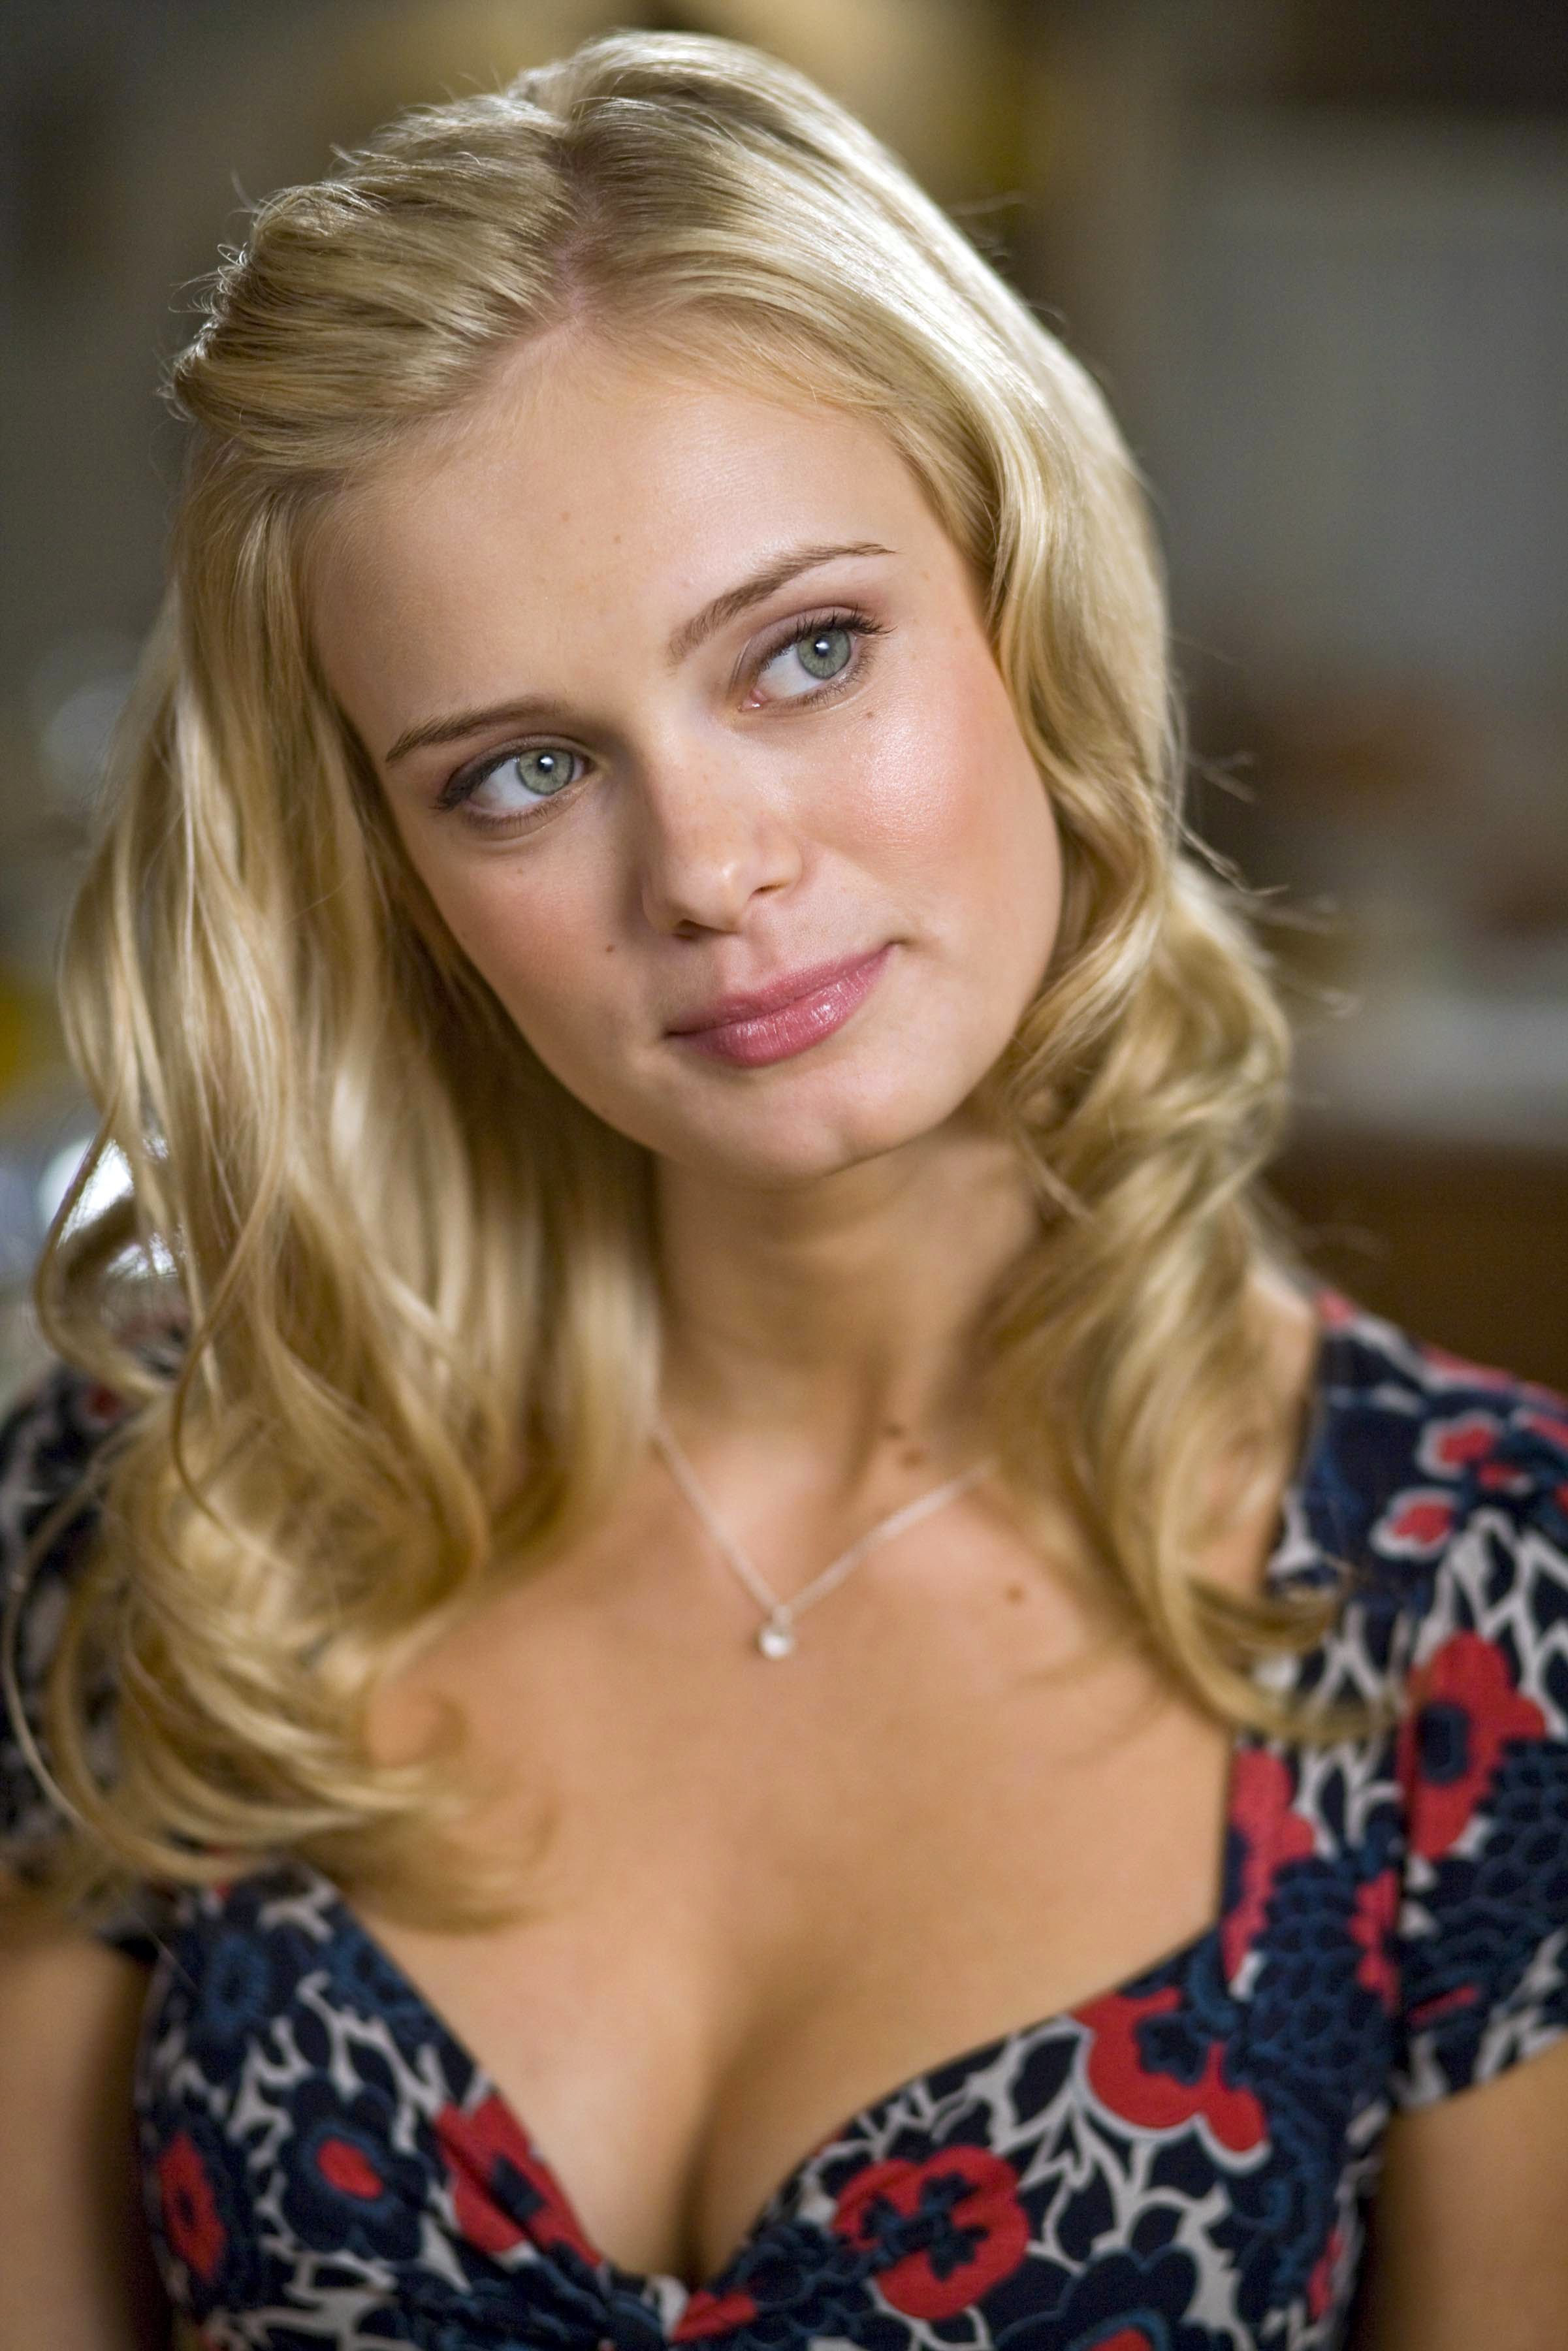 SARA PAXTON IN SLEEPOVER - See best of PHOTOS of the actress